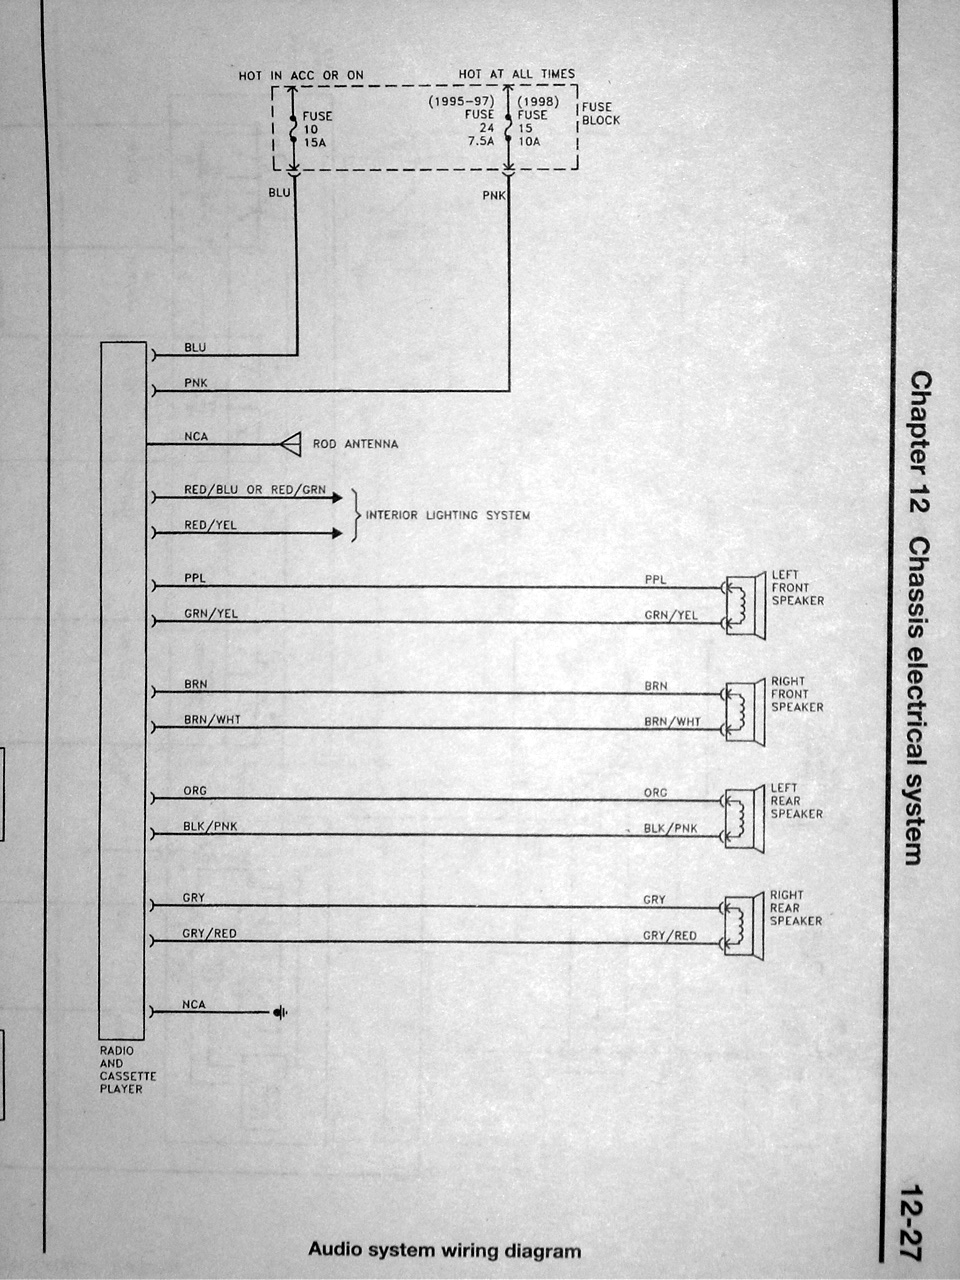 1998 Nissan Radio Wiring Diagram Trusted Wiring Diagram 2002 Nissan Sentra  Wiring Diagram 98 Nissan Frontier Stereo Wiring